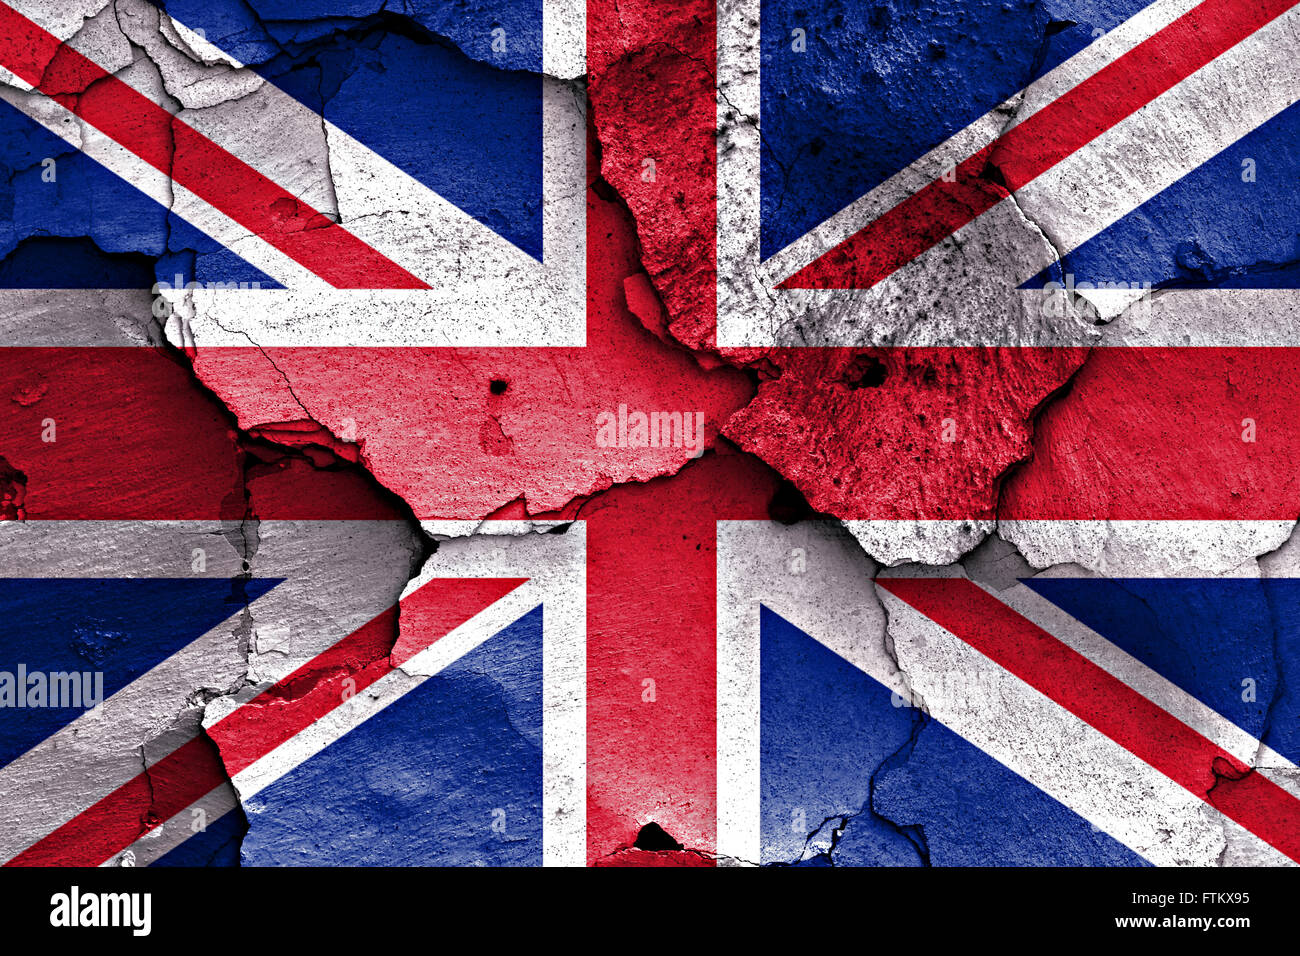 https://c8.alamy.com/comp/FTKX95/flag-of-uk-painted-on-cracked-wall-FTKX95